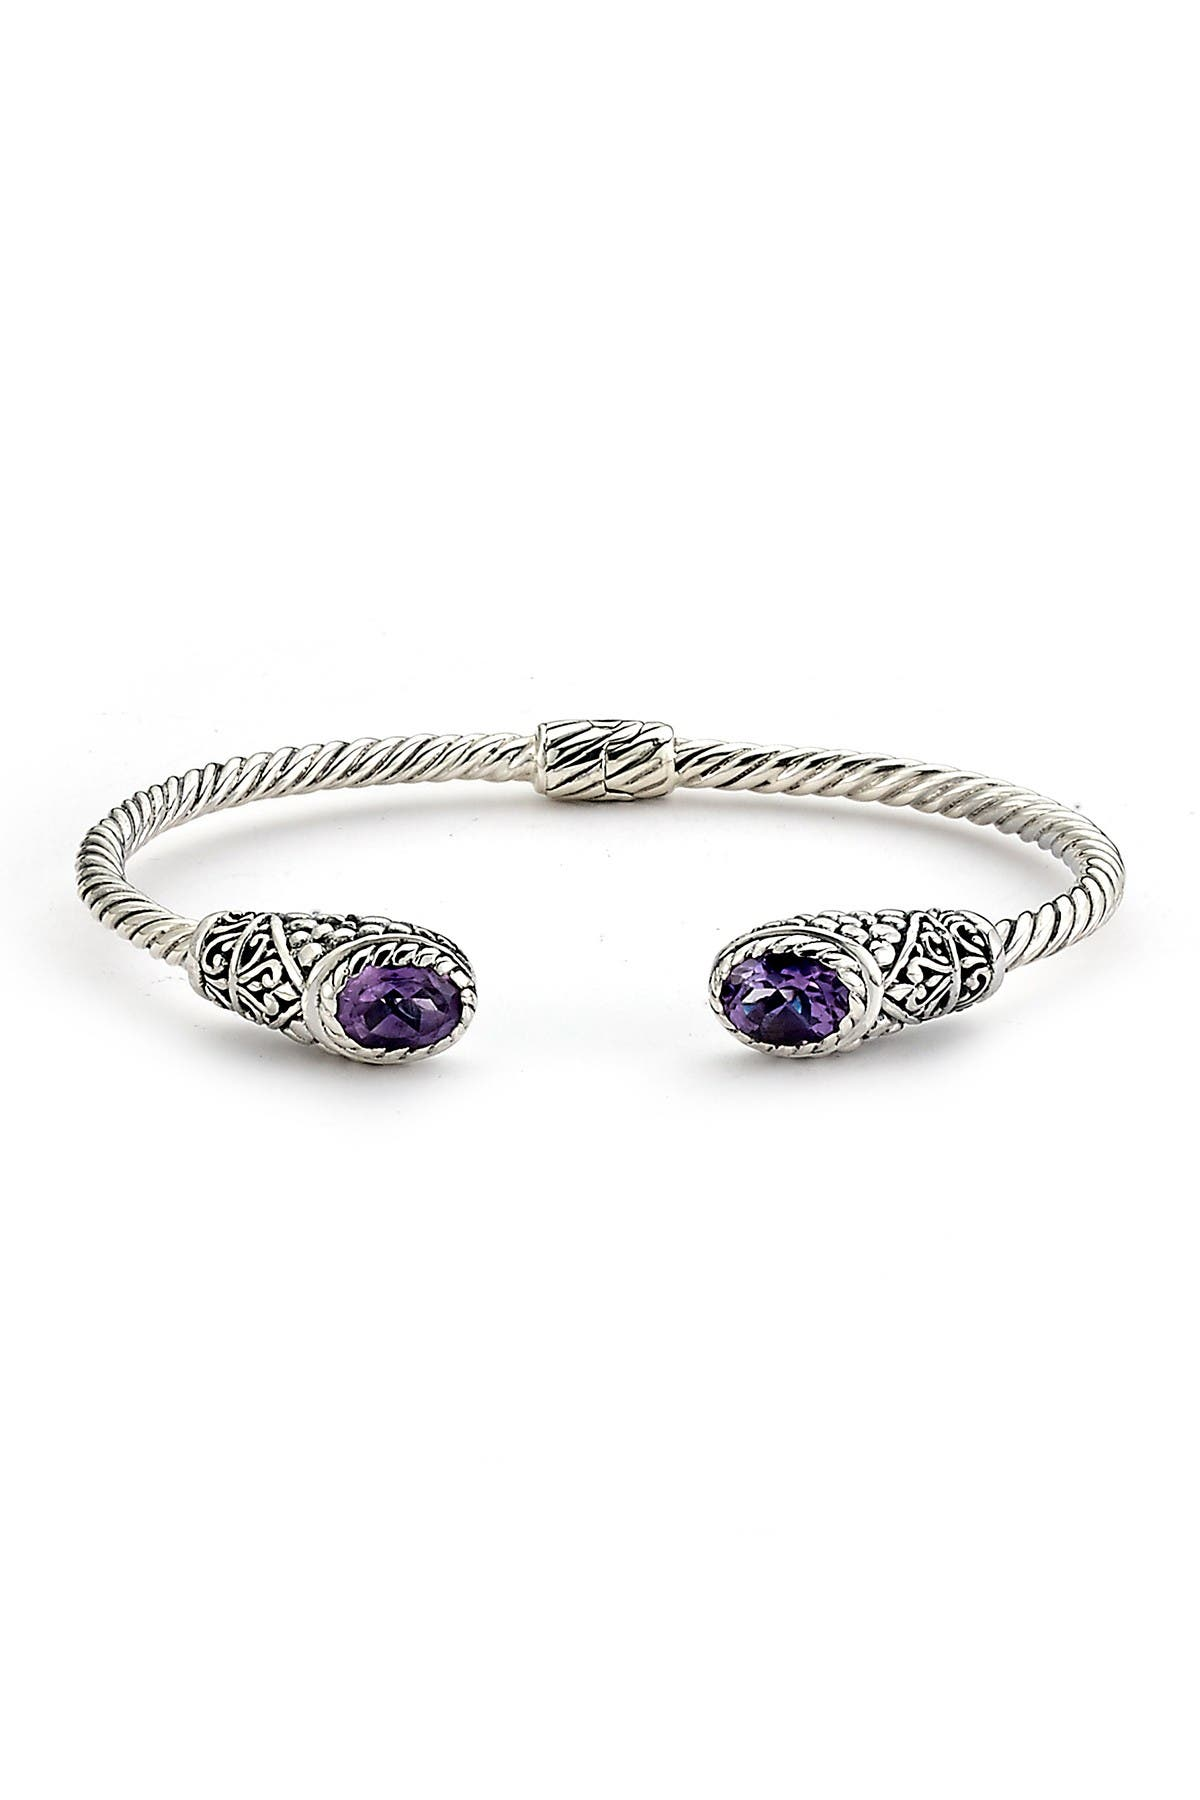 Image of Samuel B Jewelry Sterling Silver Twisted Cable Oval Cut Amethyst Hinged Bangle